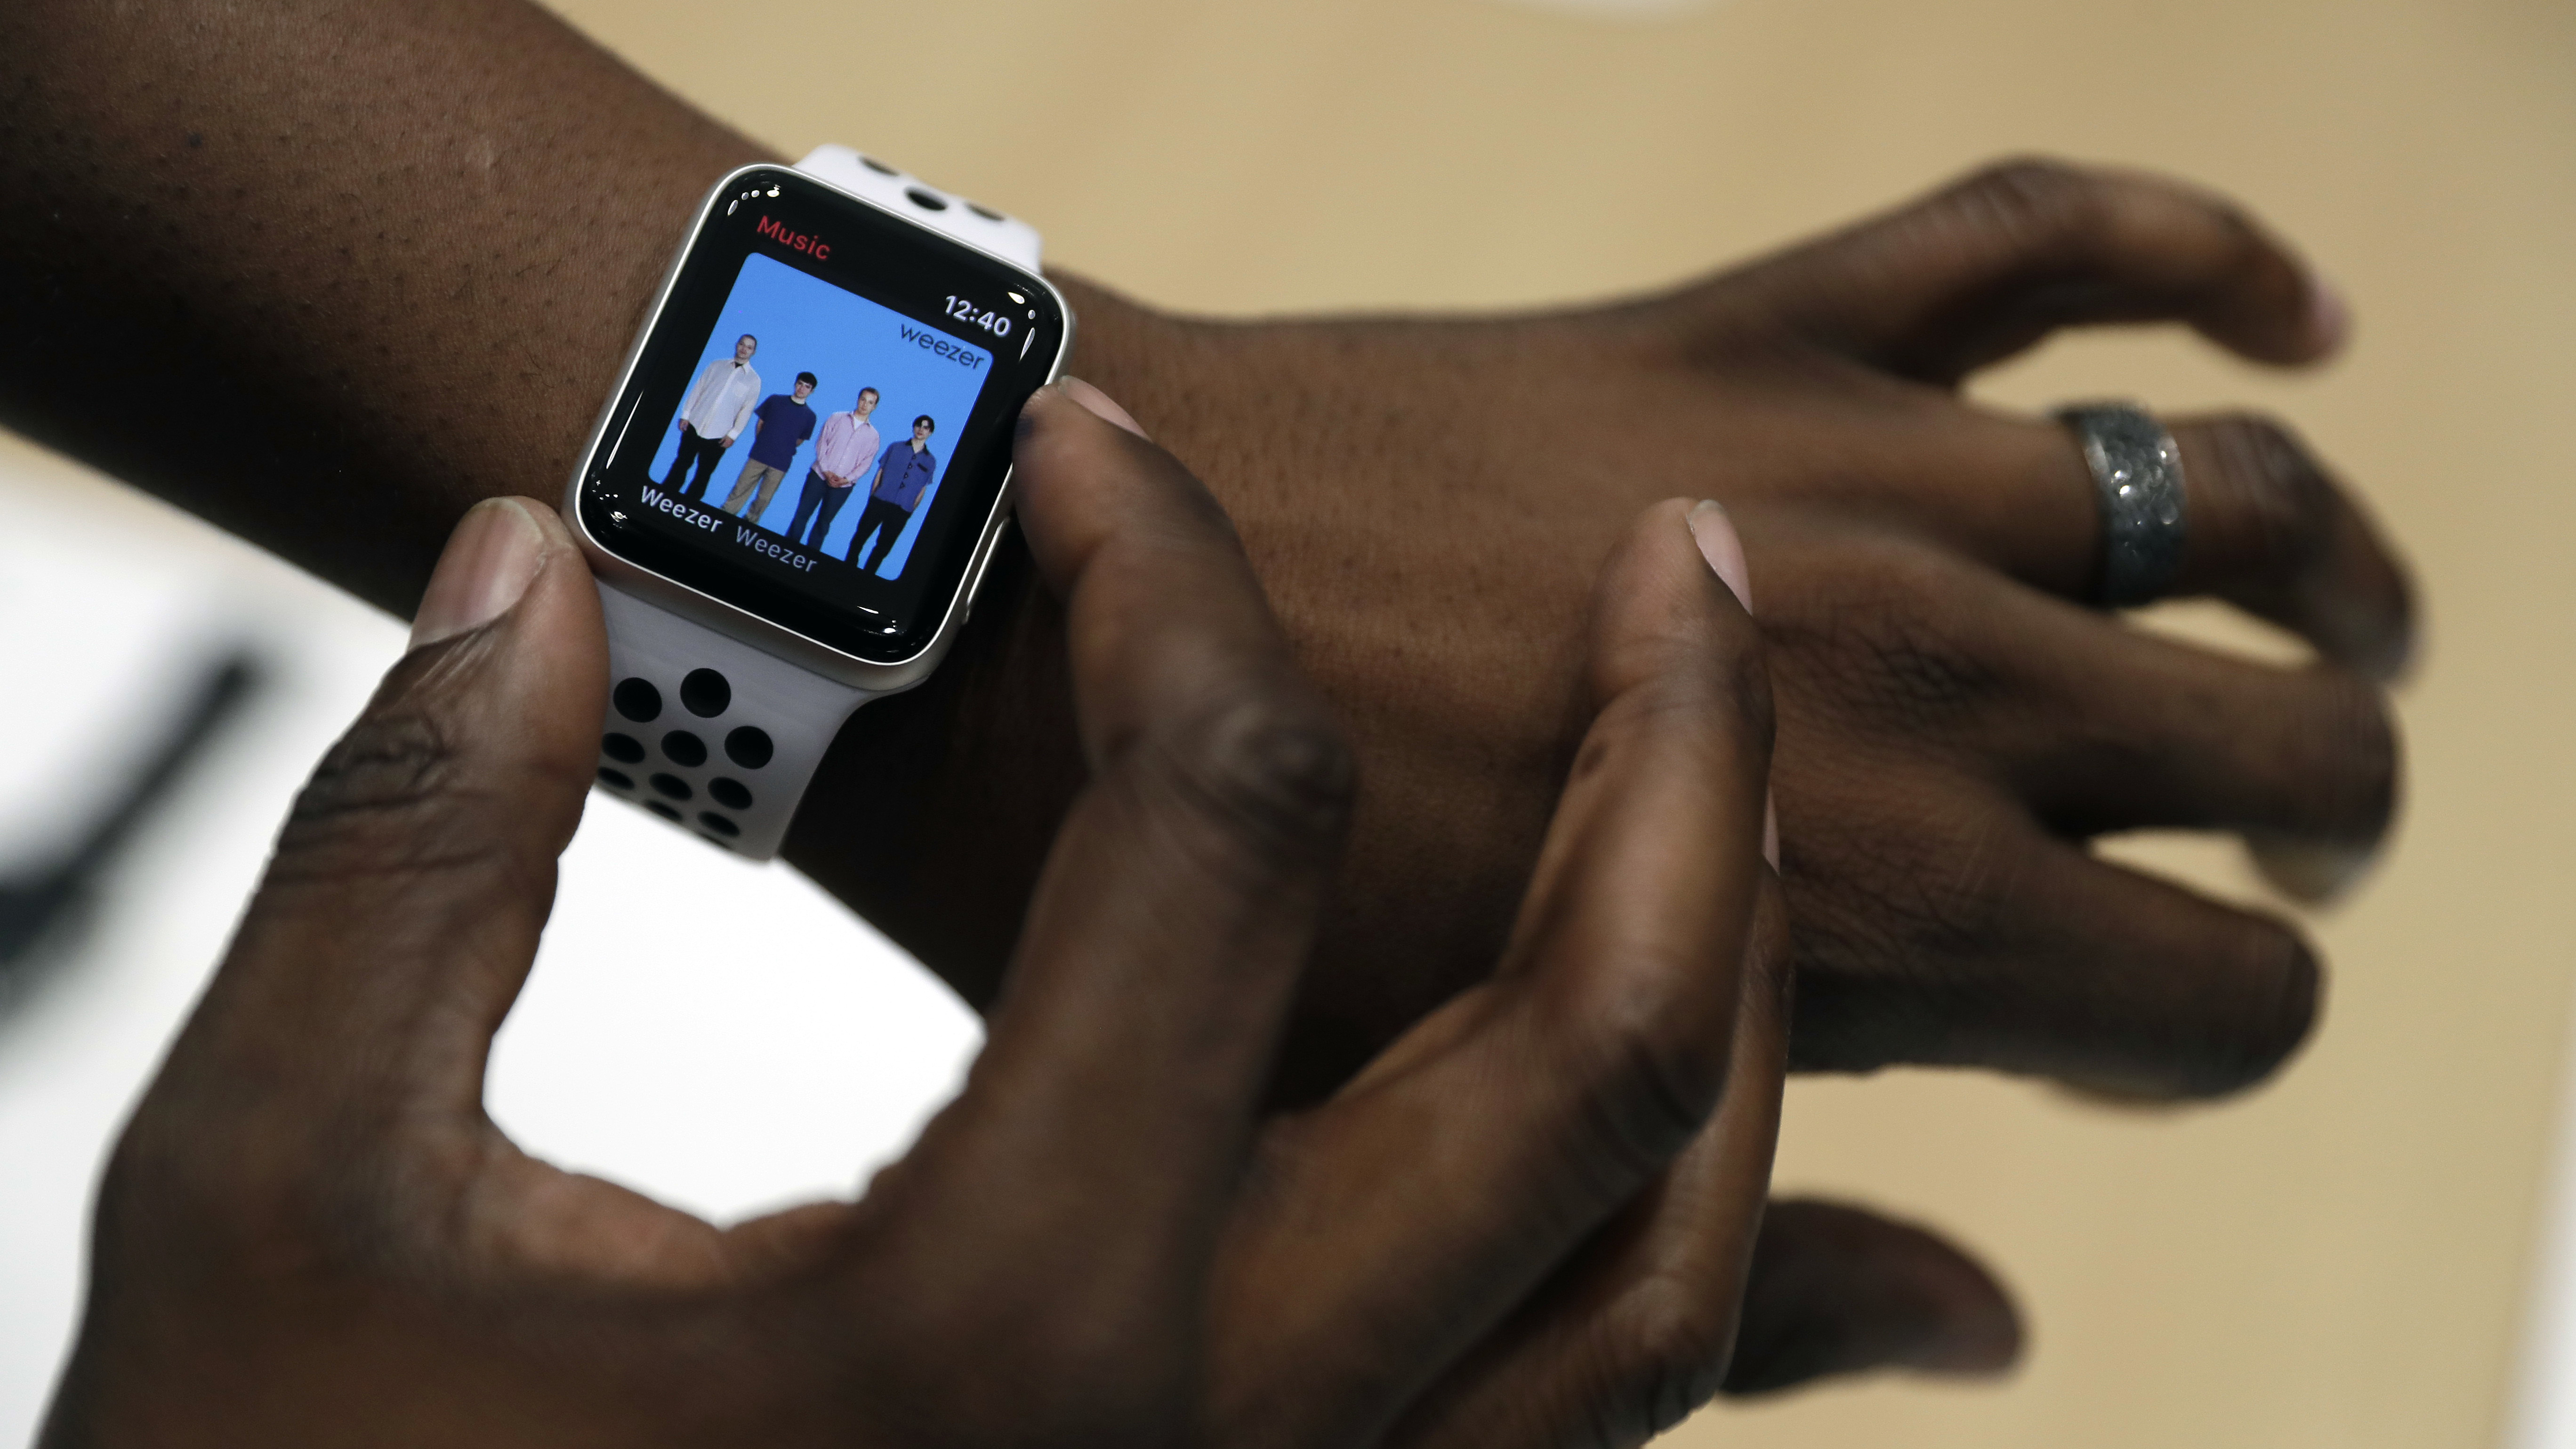 The new Apple Watch Series 3 is displayed in the showroom after the new product announcement at the Steve Jobs Theater on the new Apple campus on Tuesday, Sept. 12, 2017, in Cupertino, Calif. (AP Photo/Marcio Jose Sanchez)